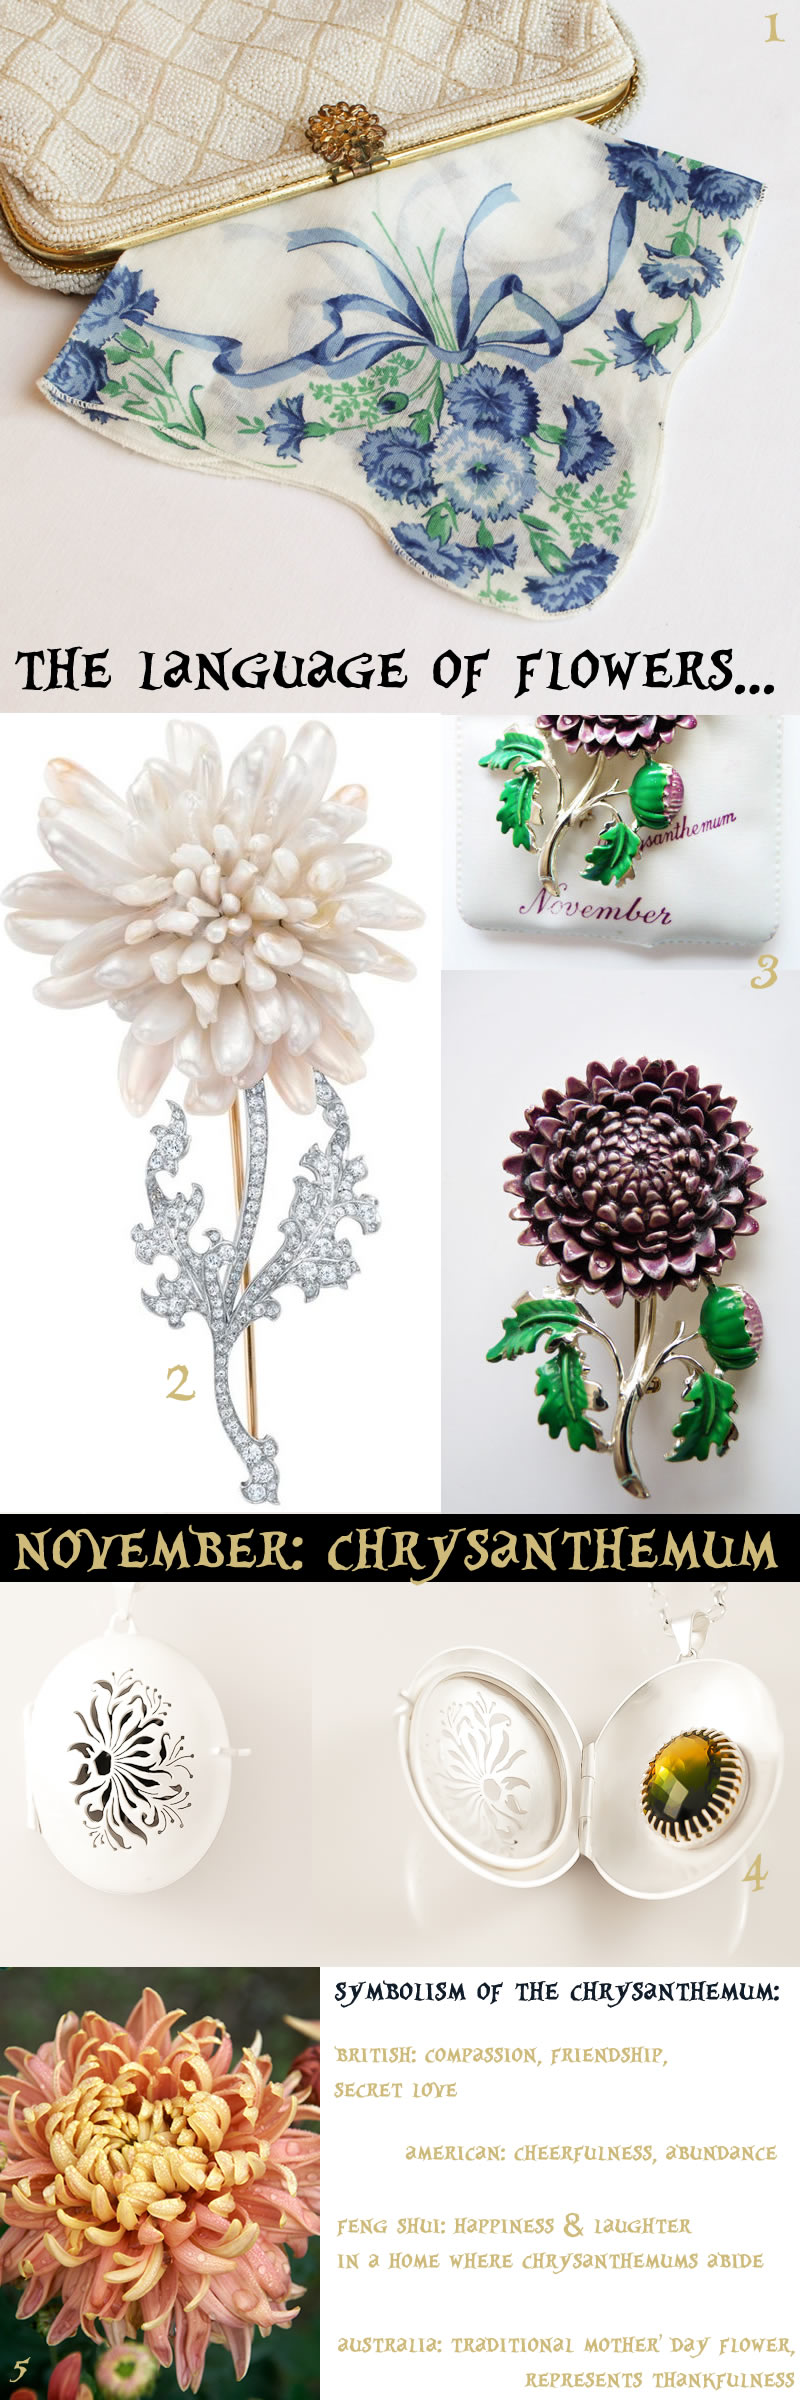 november birthflower chrysanthemum